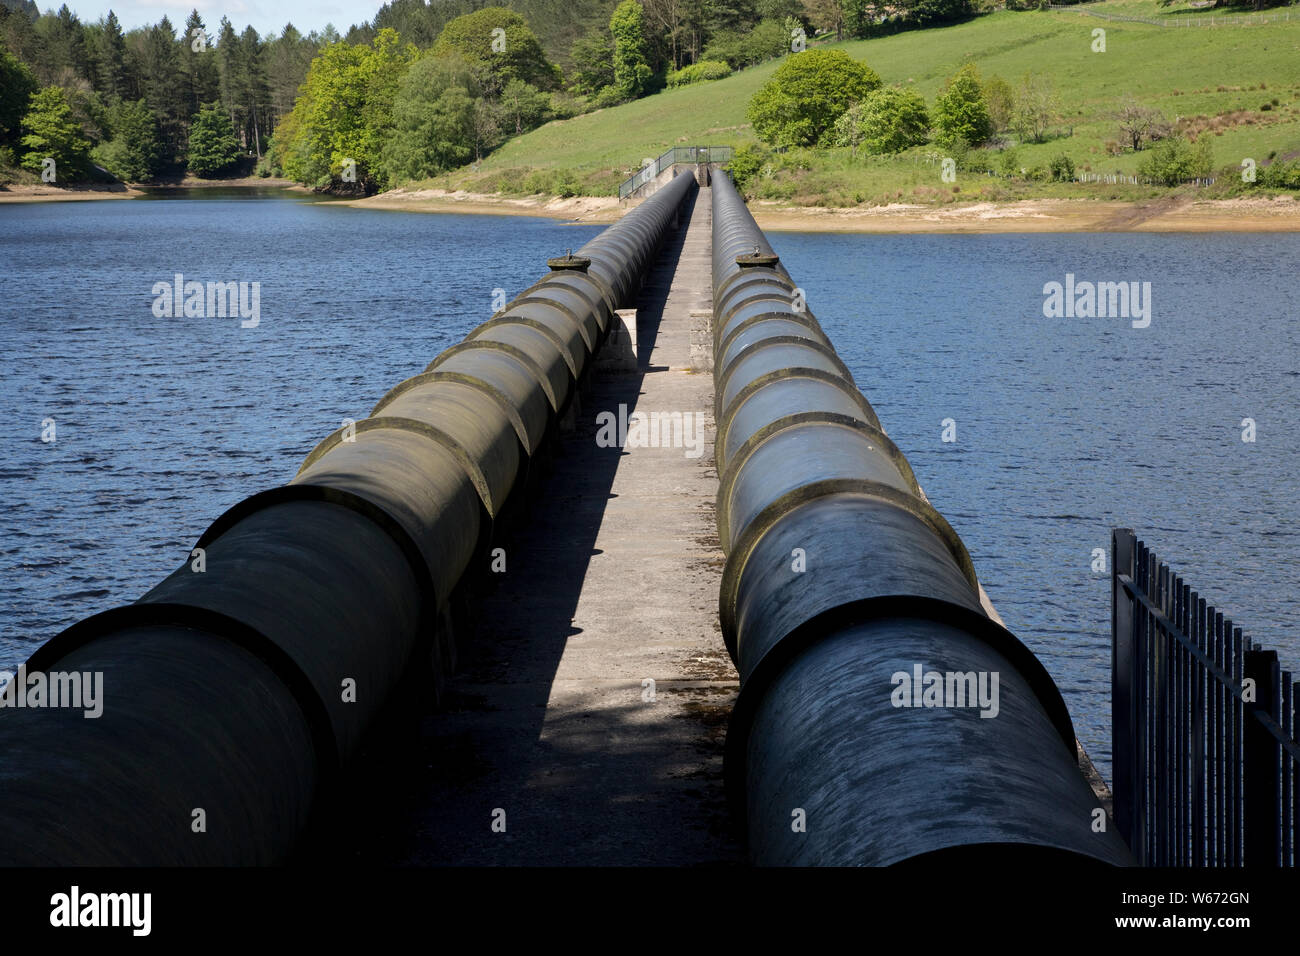 Twin pipe aqueducts at Ladybower Reservoir, the largest (holding 6300 million gallons) of three water storage reservoirs in the Derwent Valley, Peak D Stock Photo